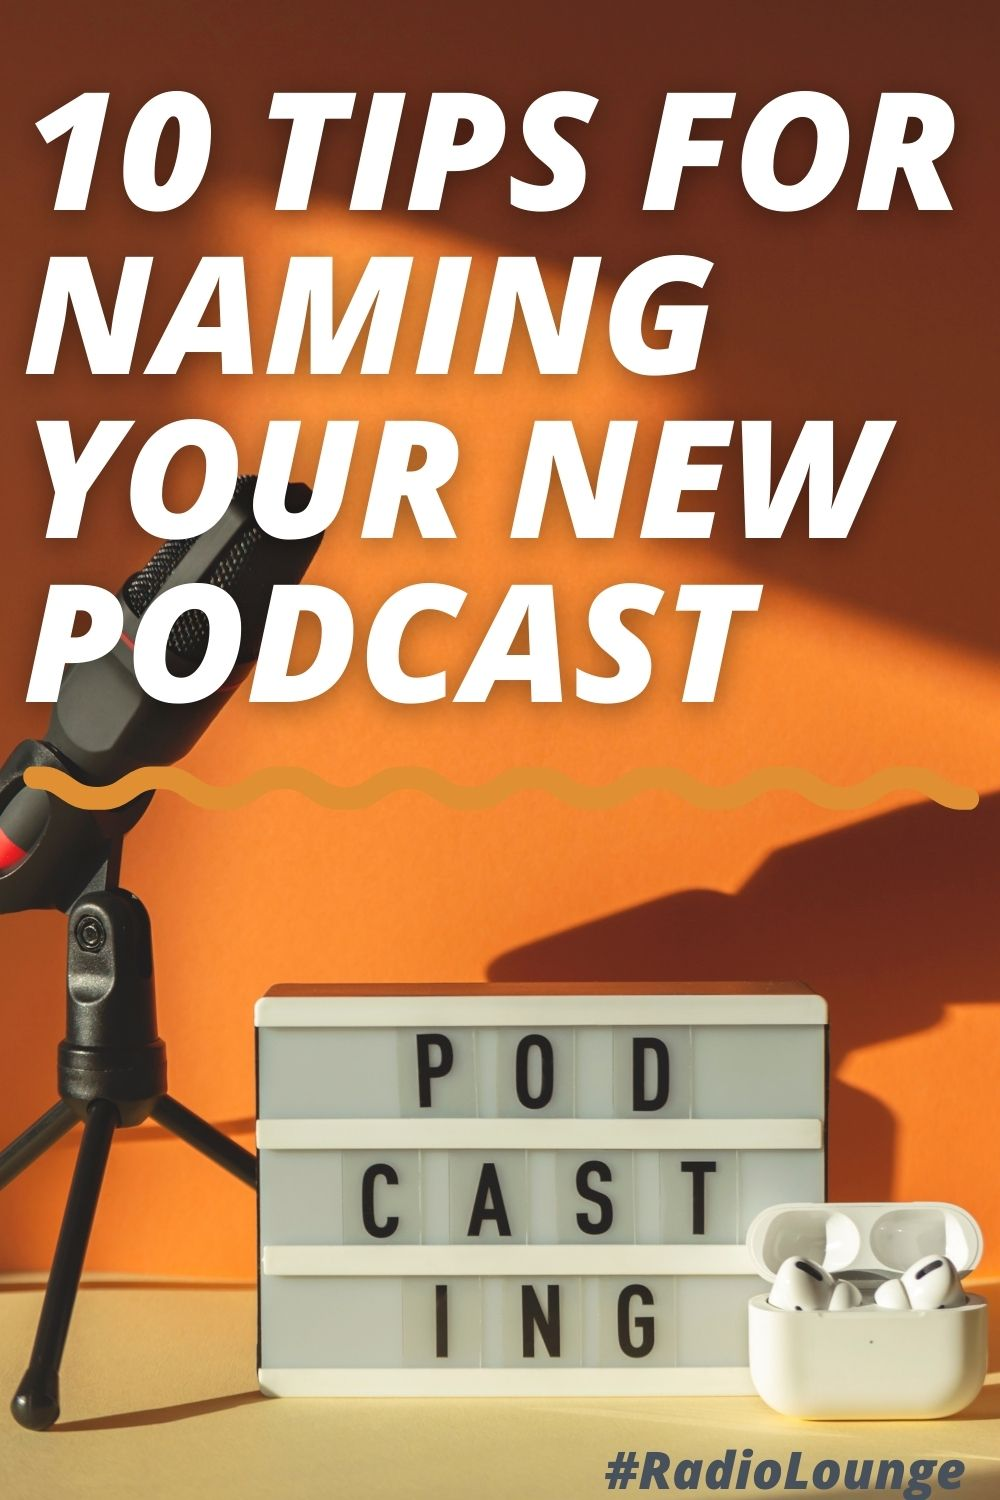 10 Tips For Naming Your New Podcast